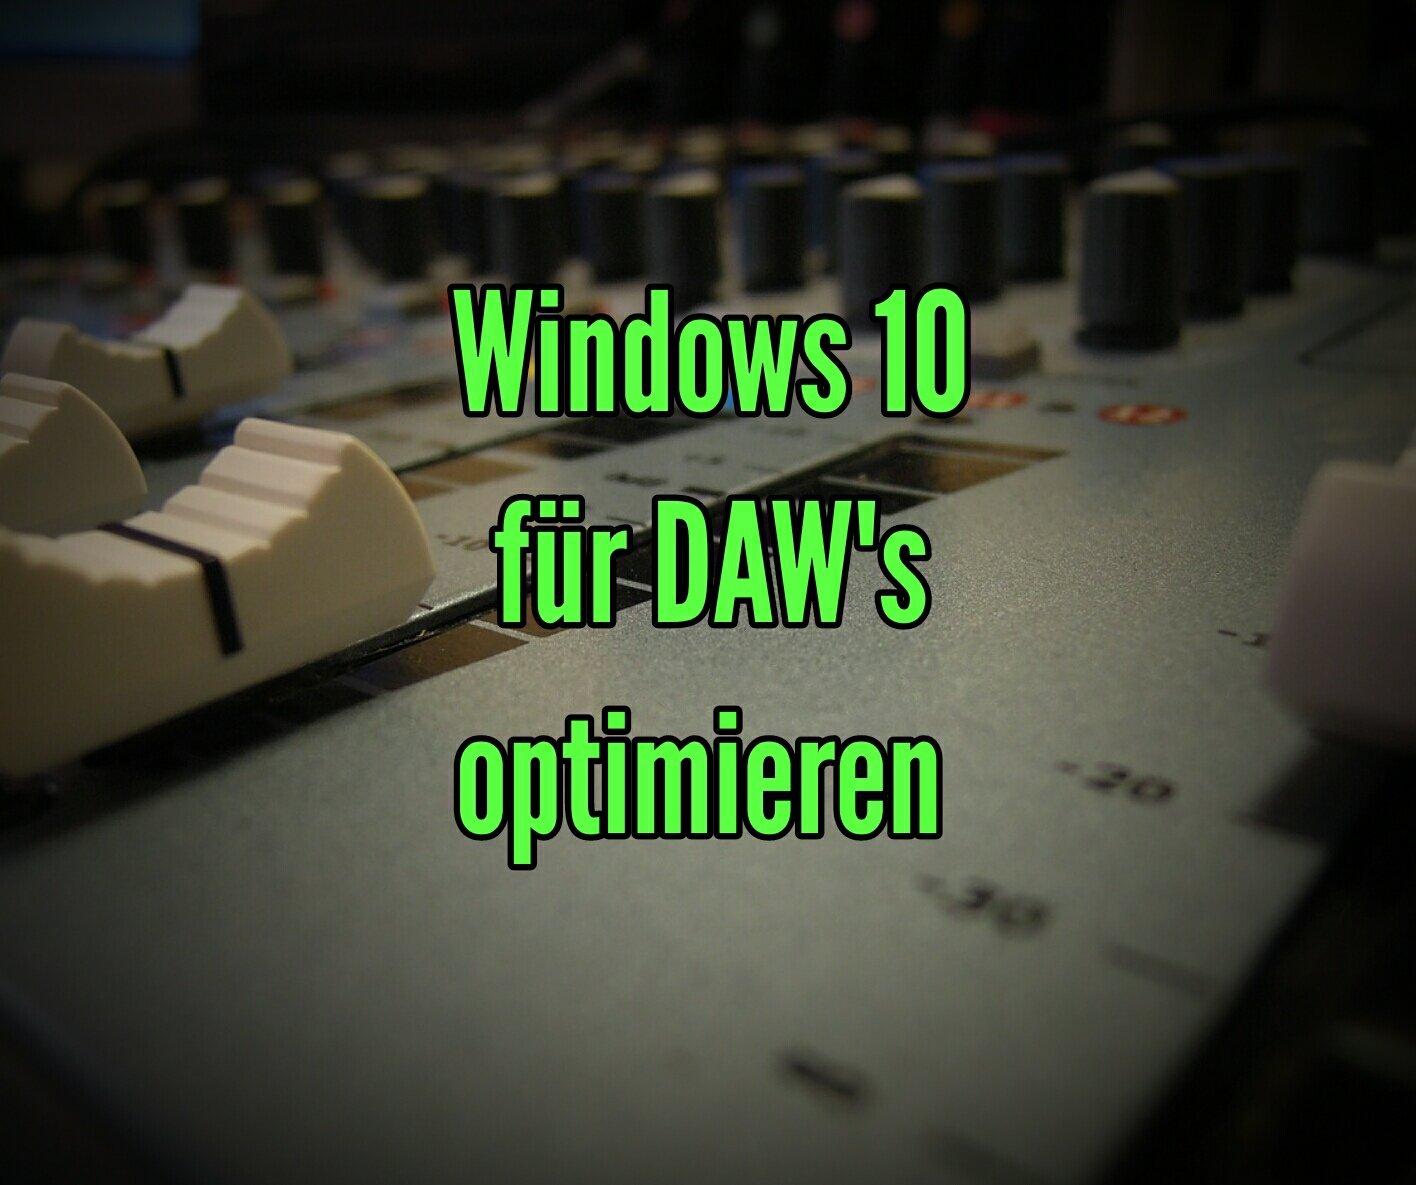 Audio PC-Windows 10 für DAW_s optimieren Studiorechner